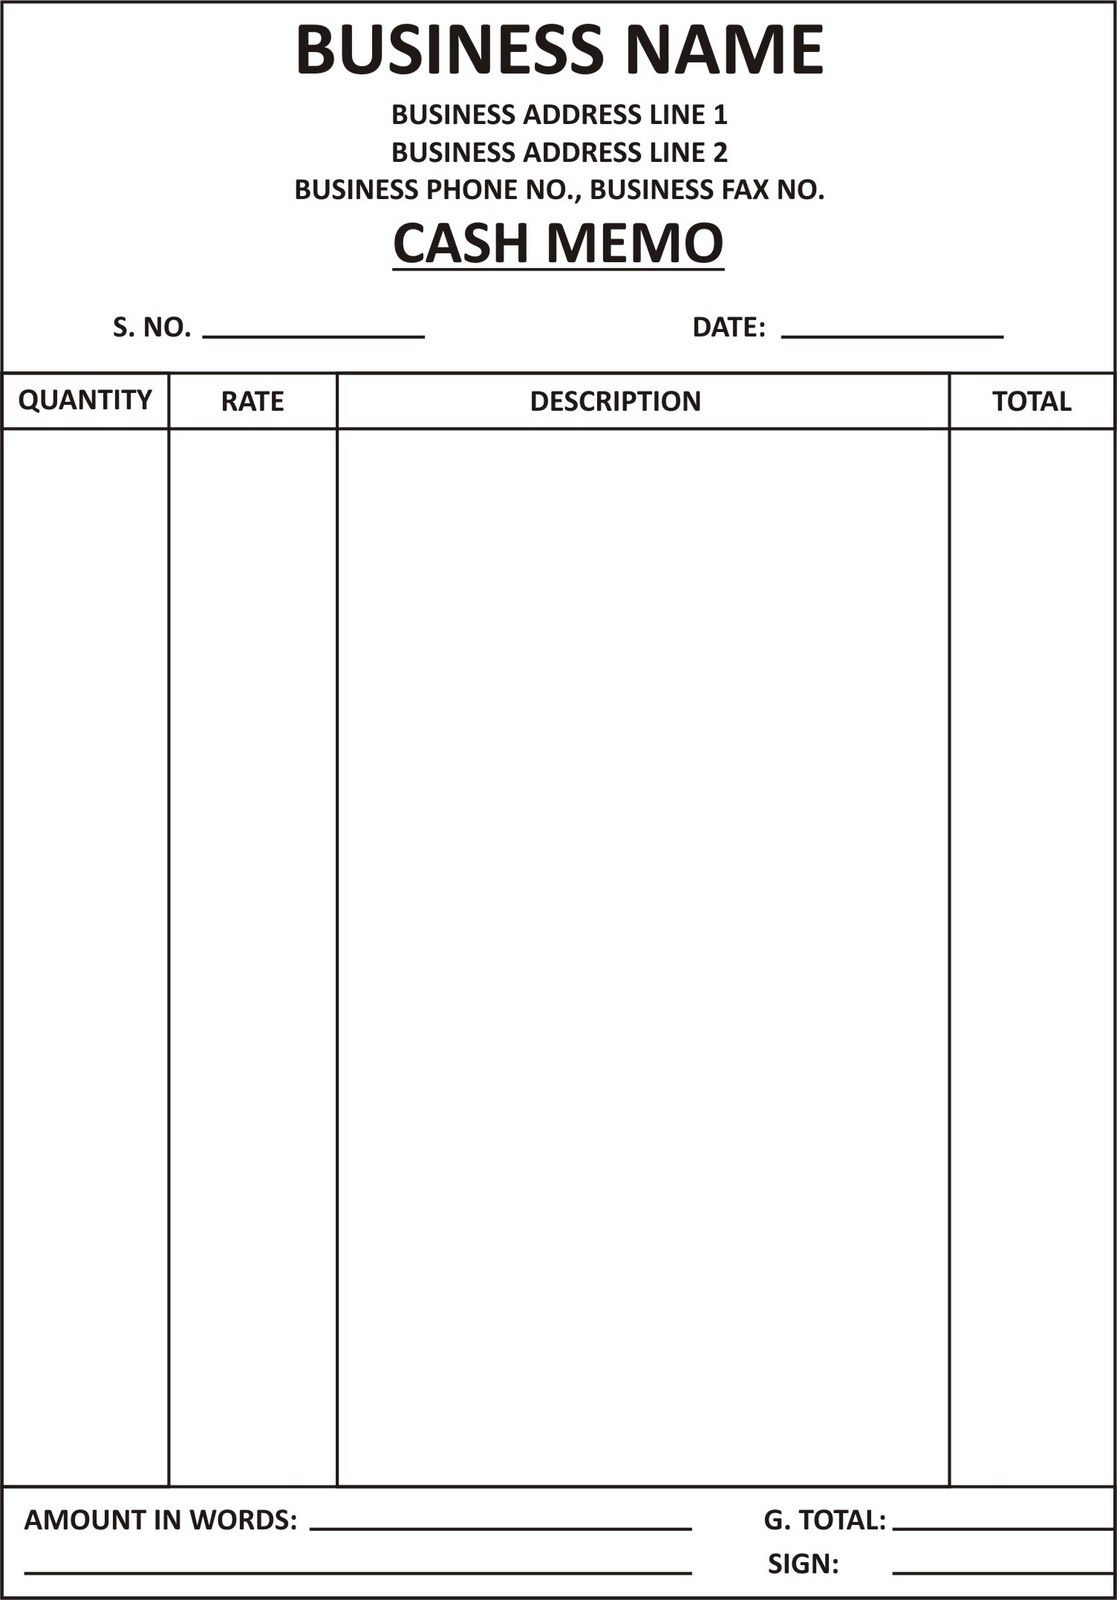 cash bill format submited images pic 2 fly in 2019 invoice bill book format pdf